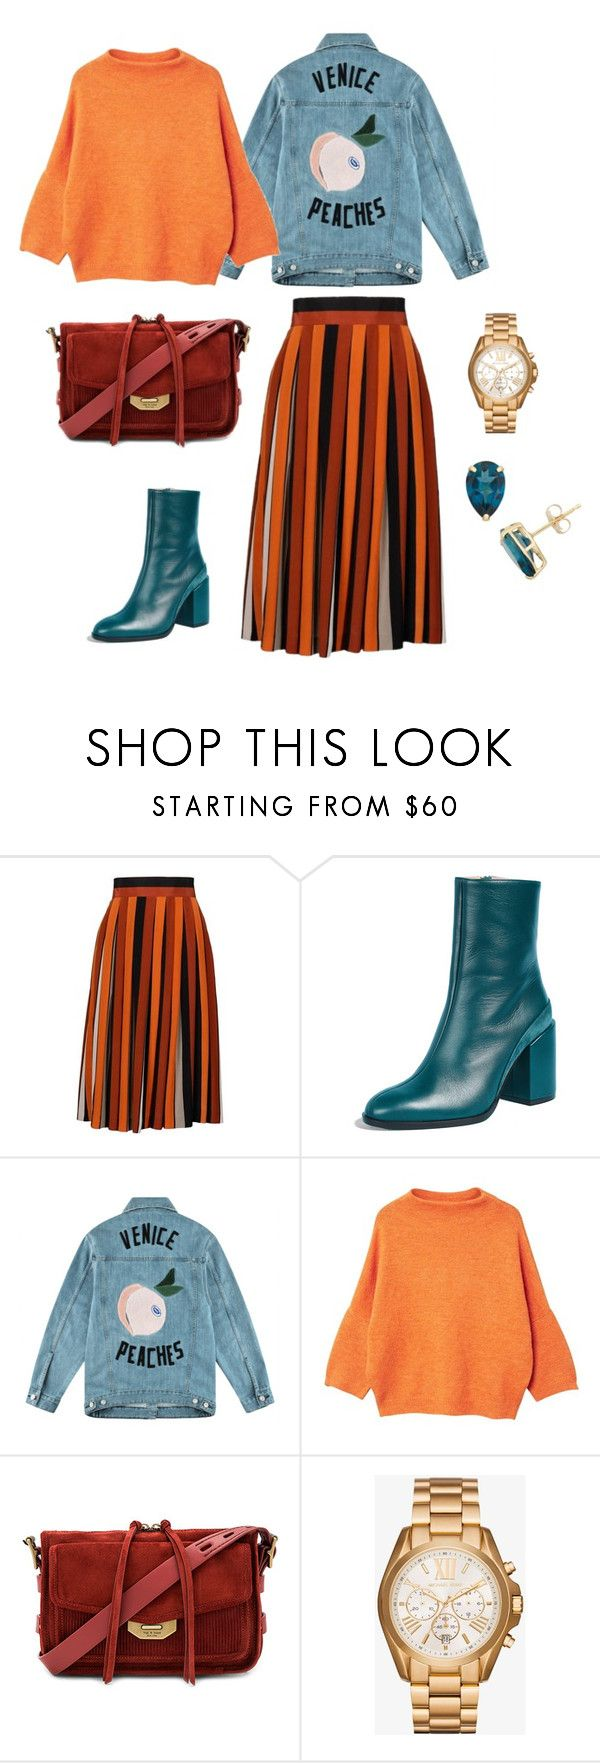 """""""Untitled #590"""" by mary-en ❤ liked on Polyvore featuring Givenchy, Dear Frances, Être Cécile, MANGO, rag & bone, Michael Kors, StreetStyle, autumn and fallfashion"""